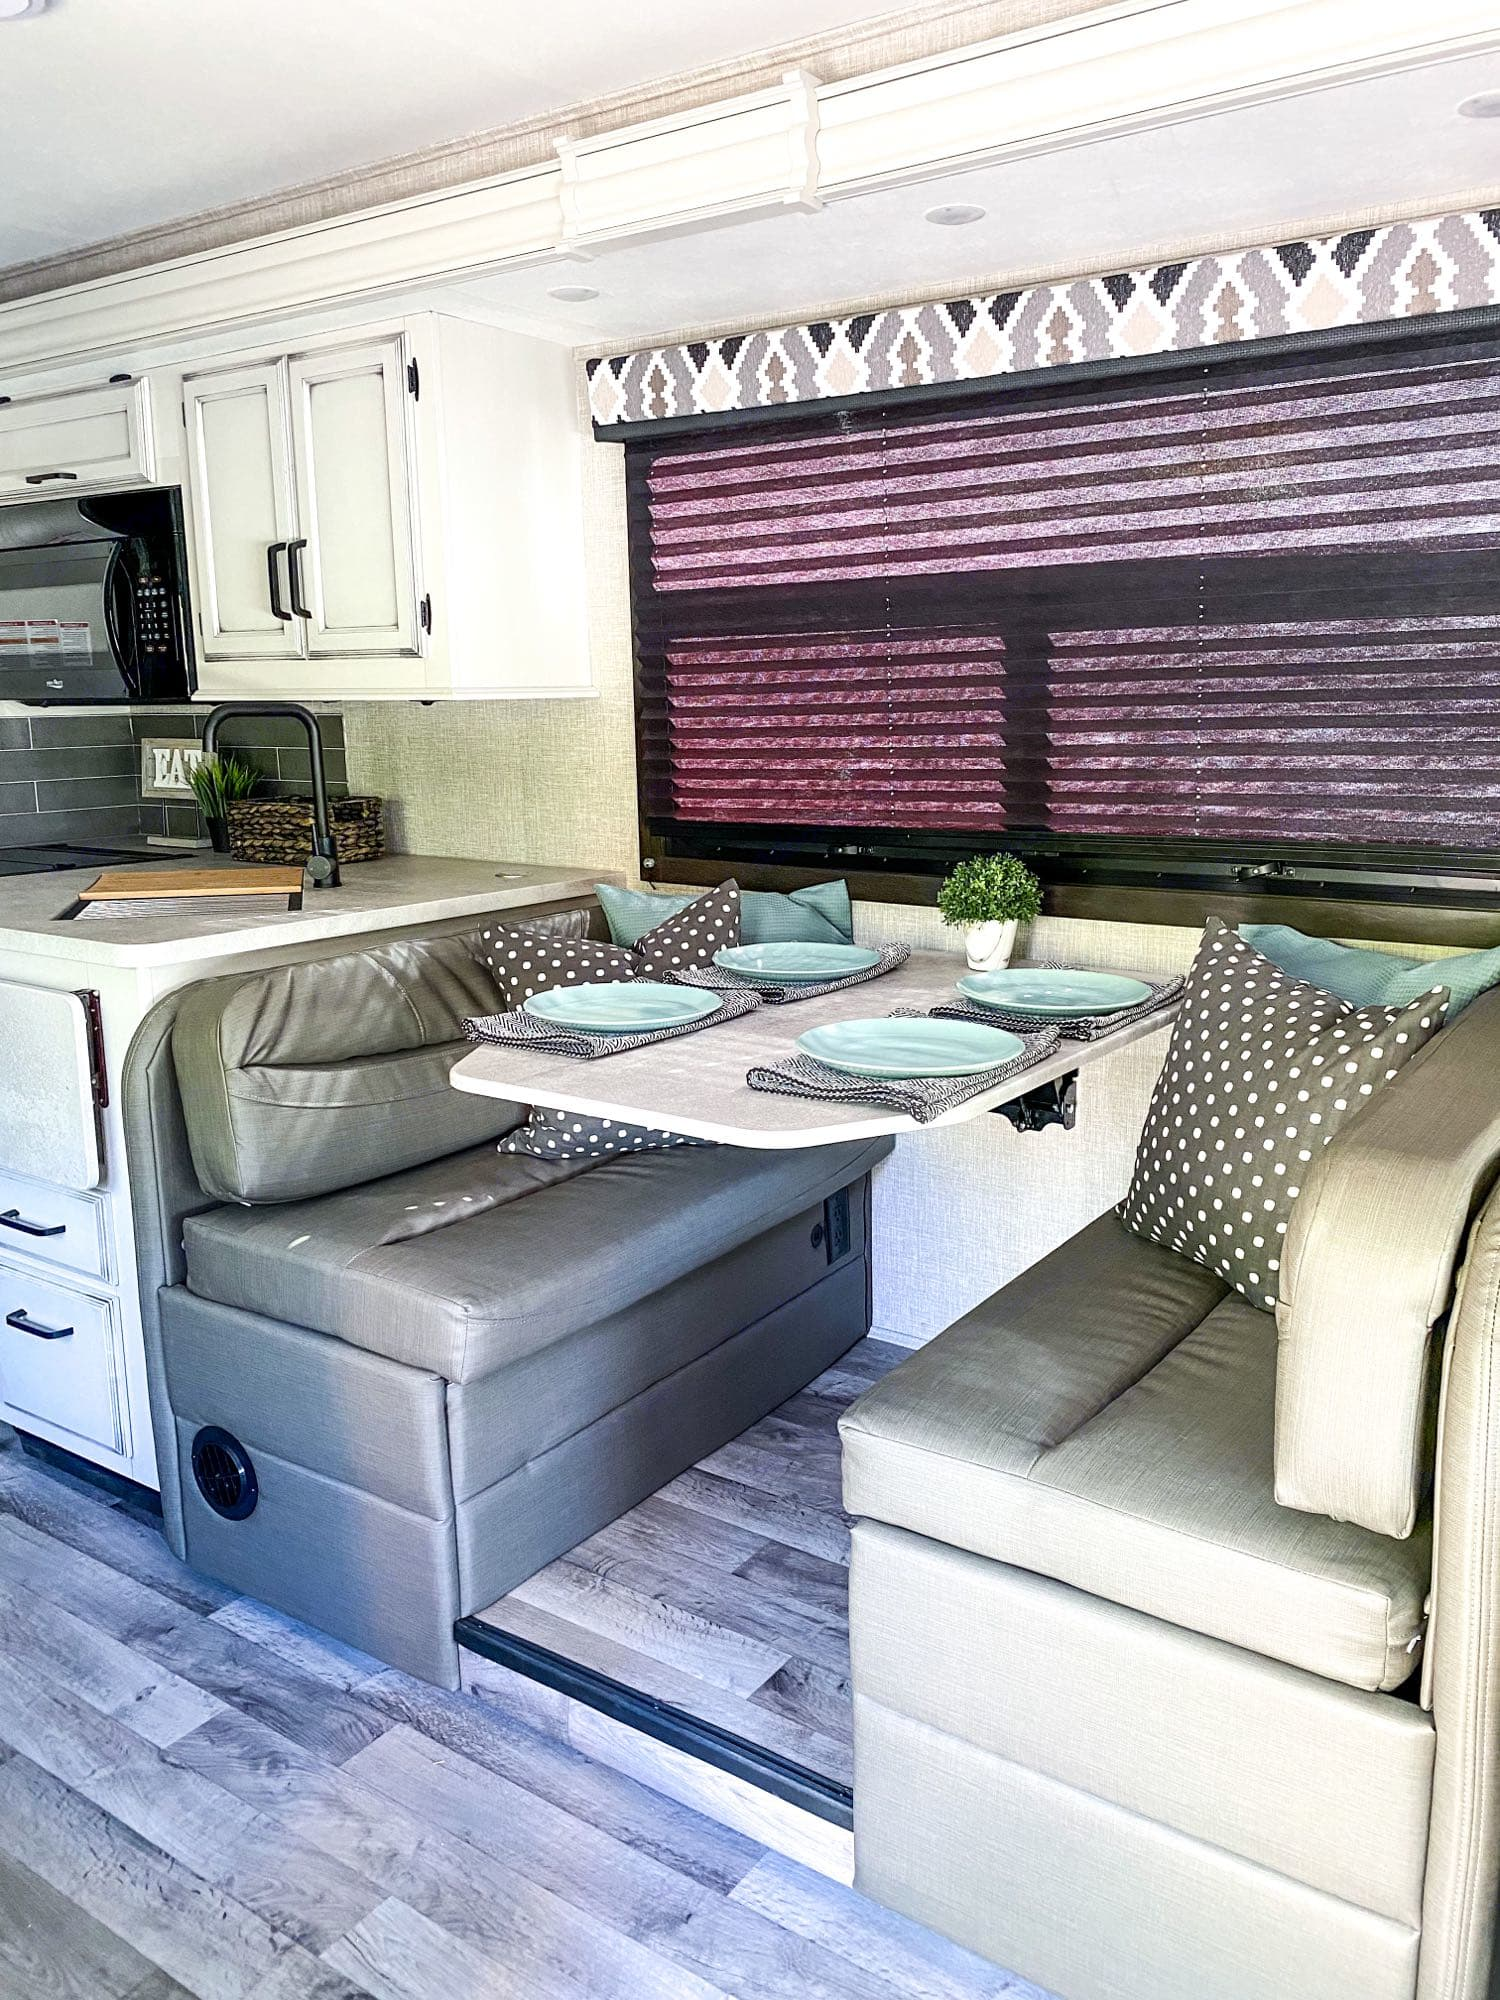 Dining table with 2 cup holders and 4 seatbelts.. Entegra Coach Other 2022